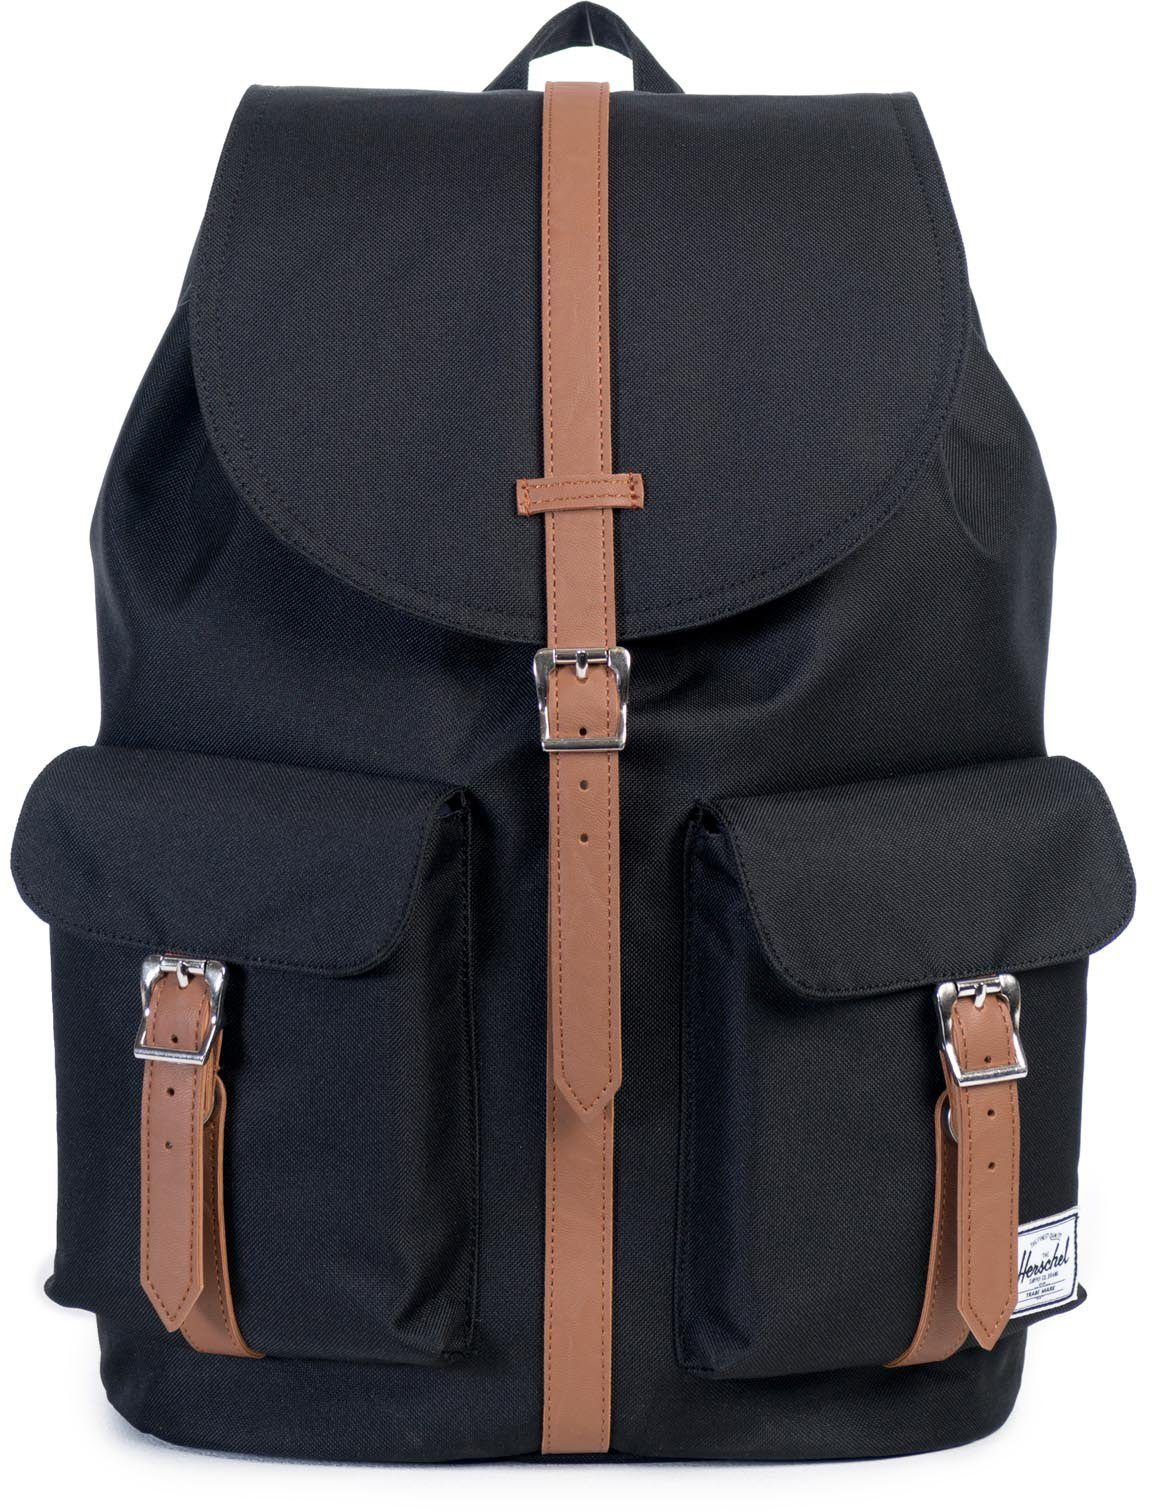 Herschel Rucksack mit Laptopfach, »Dawson Backpack, Black«